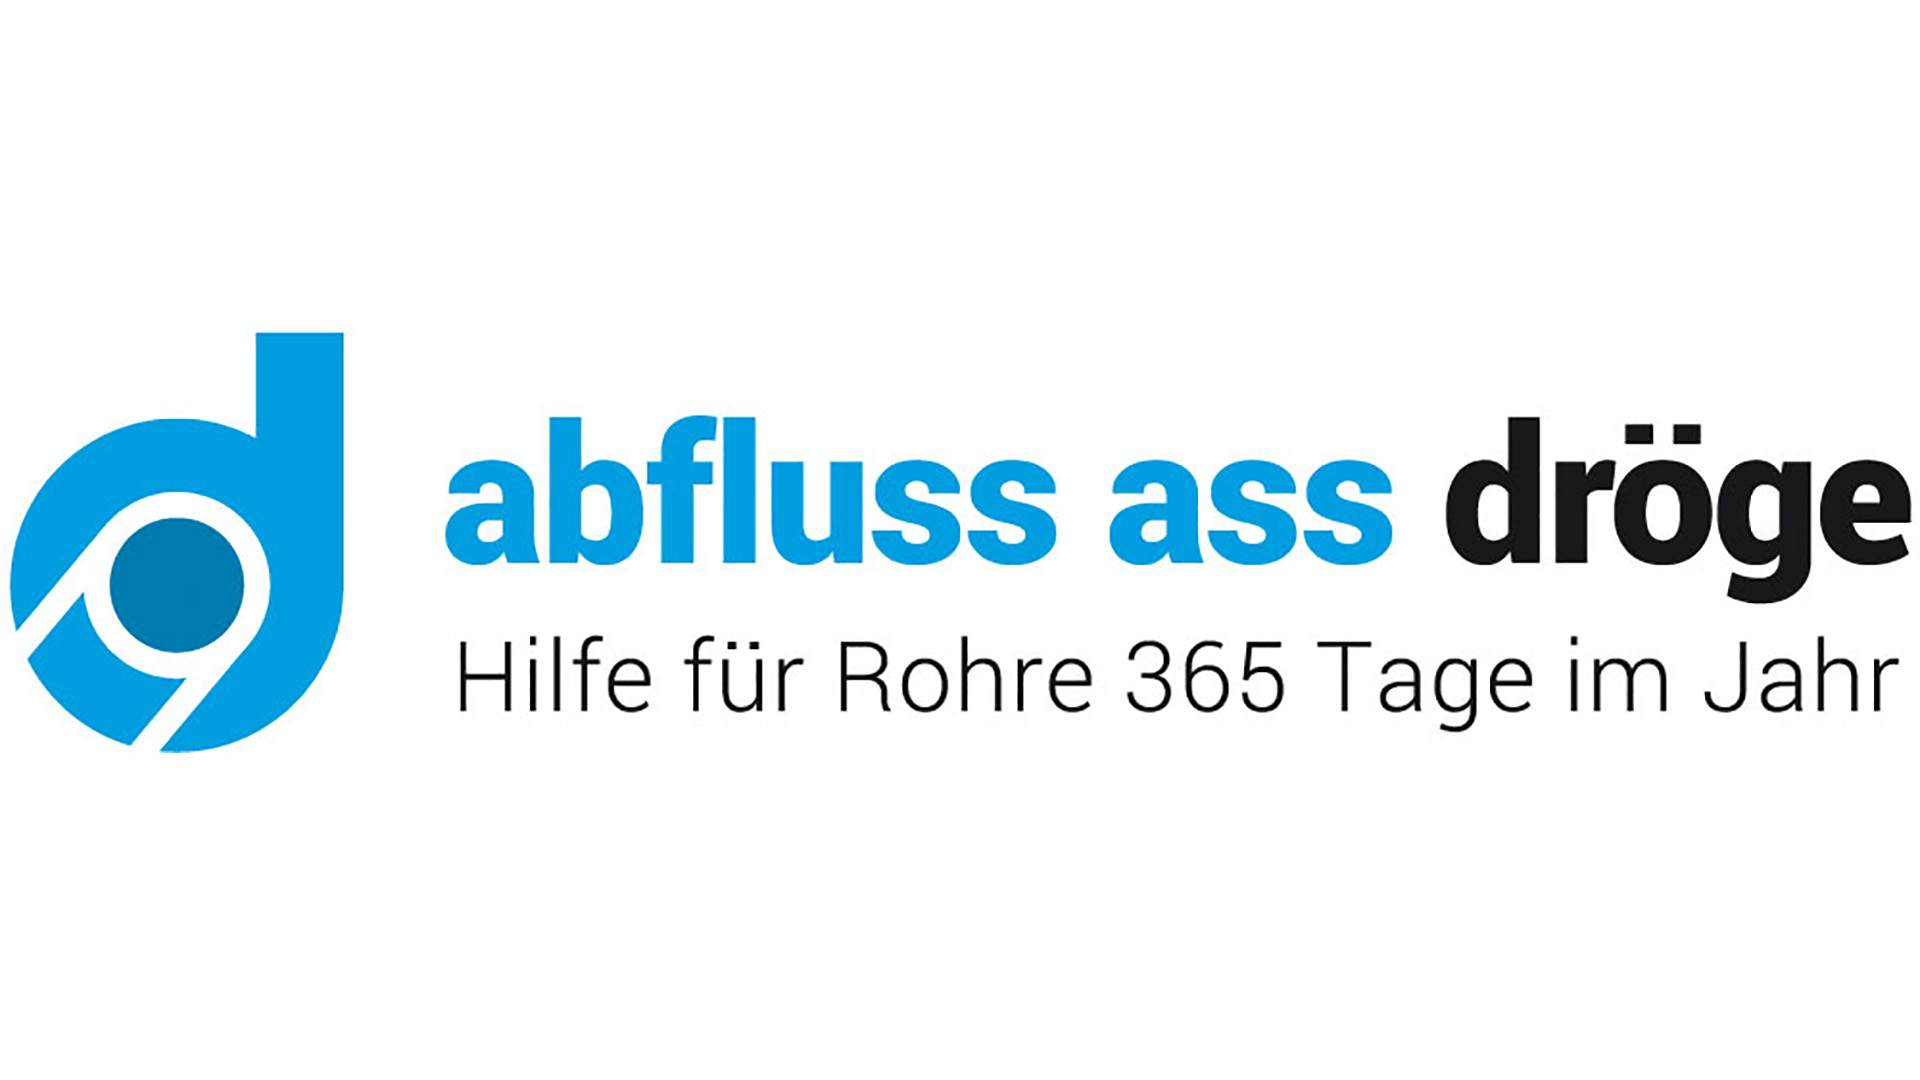 abfluss ass dröge GmbH & Co. KG Titelbild